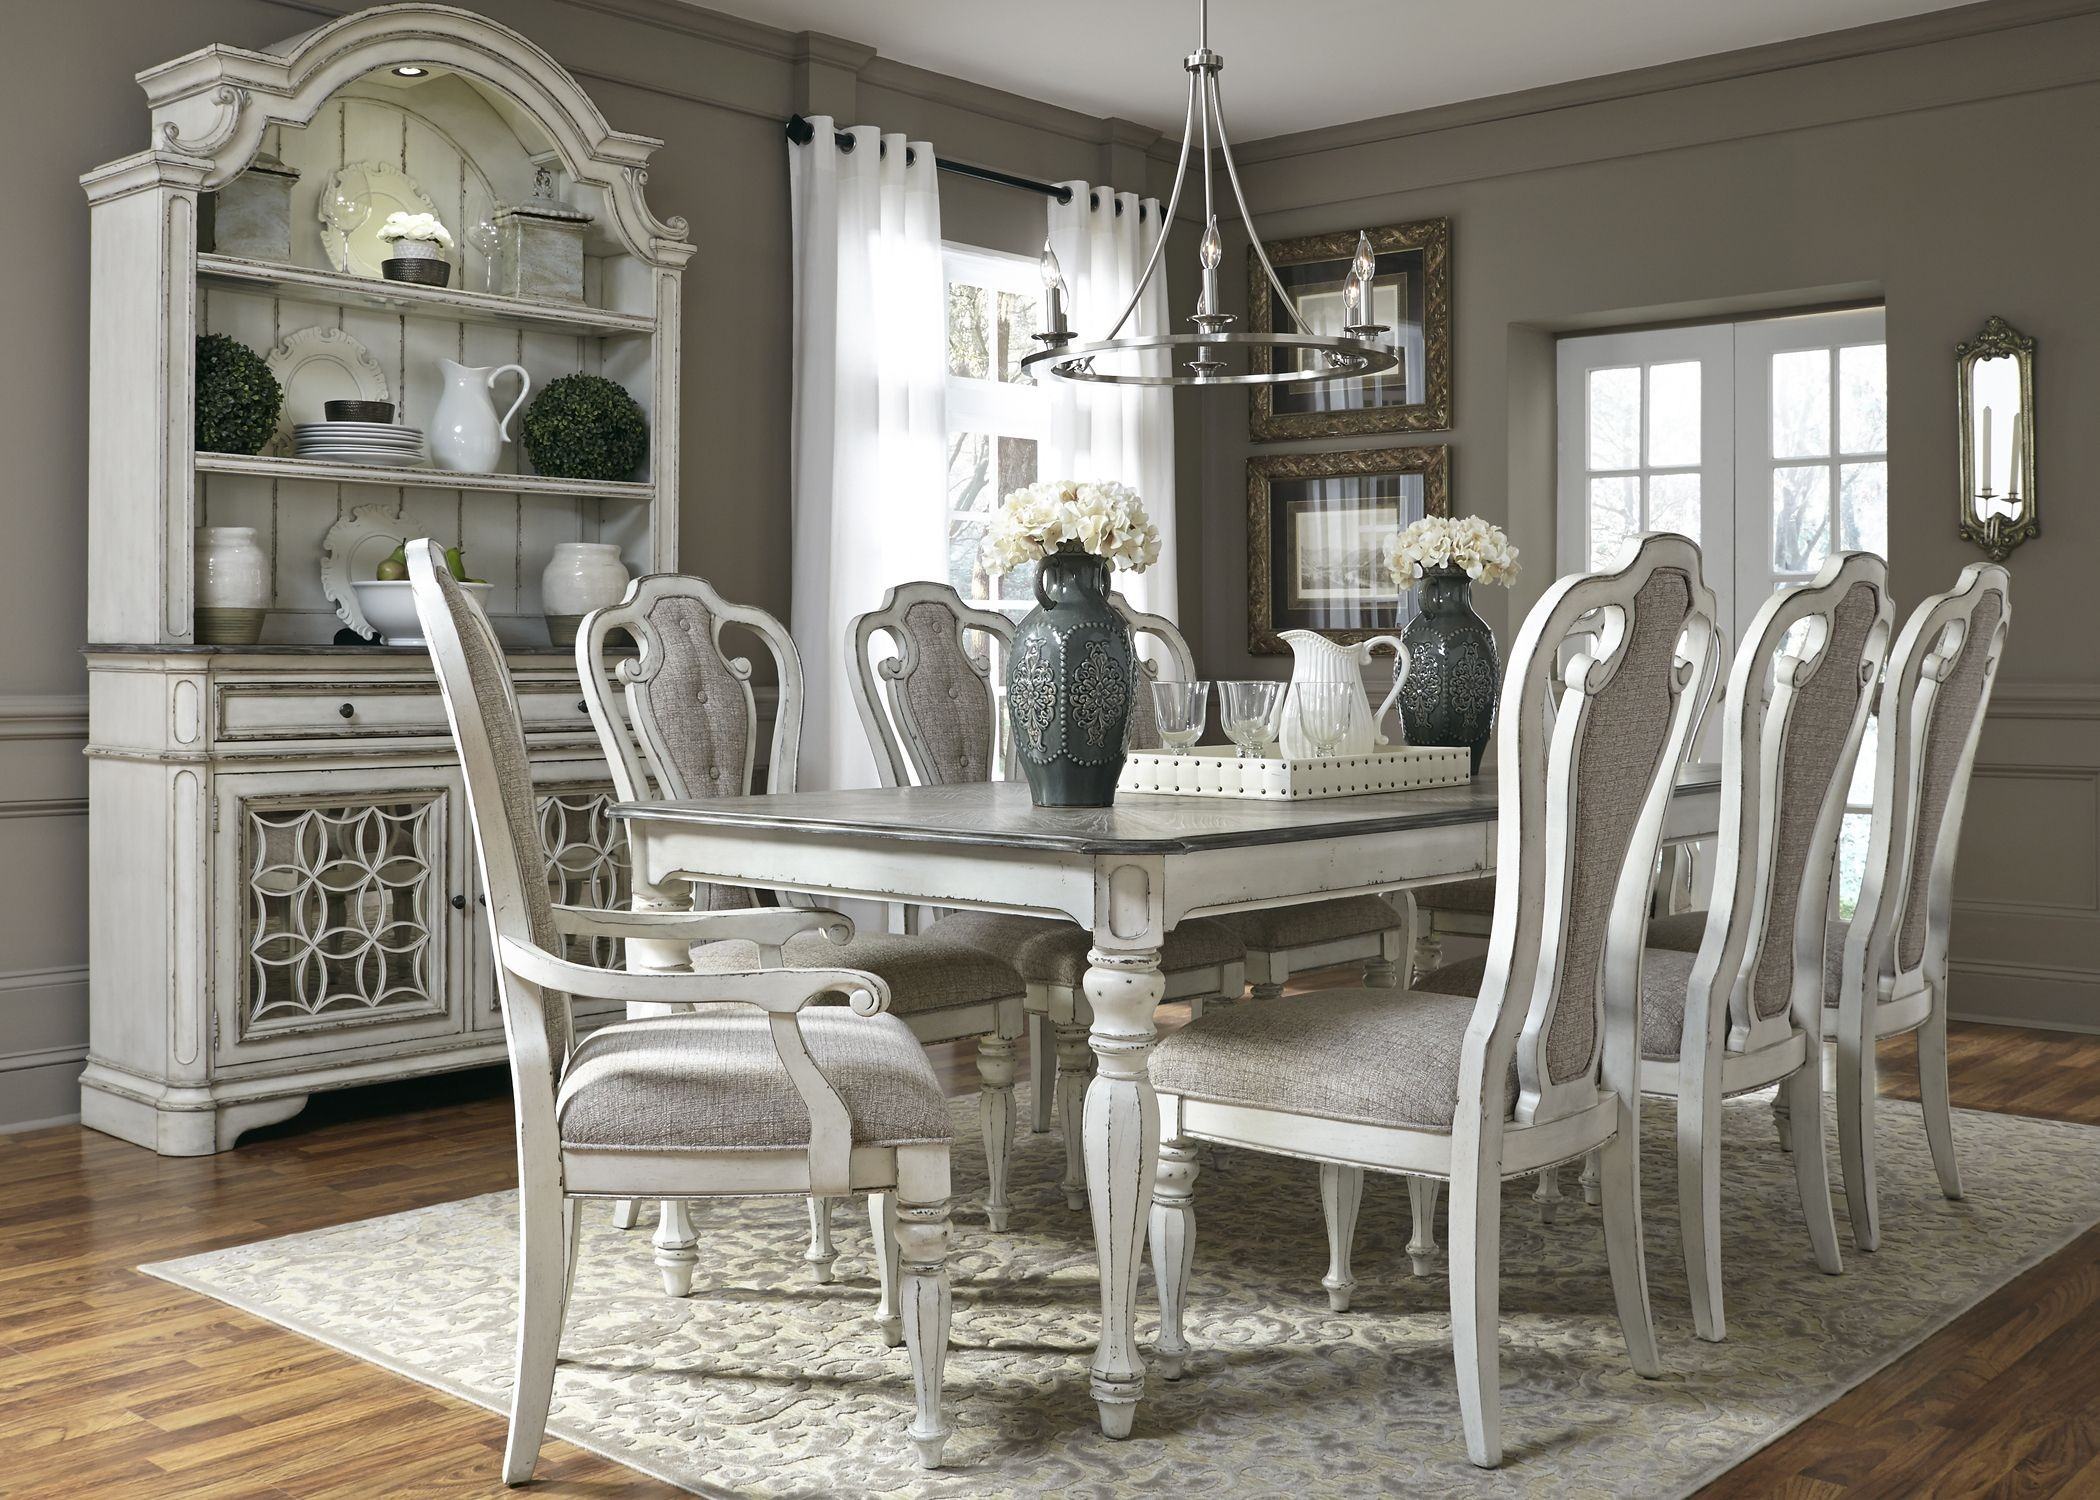 antique white kitchen dining set. 1852397 antique white kitchen dining set